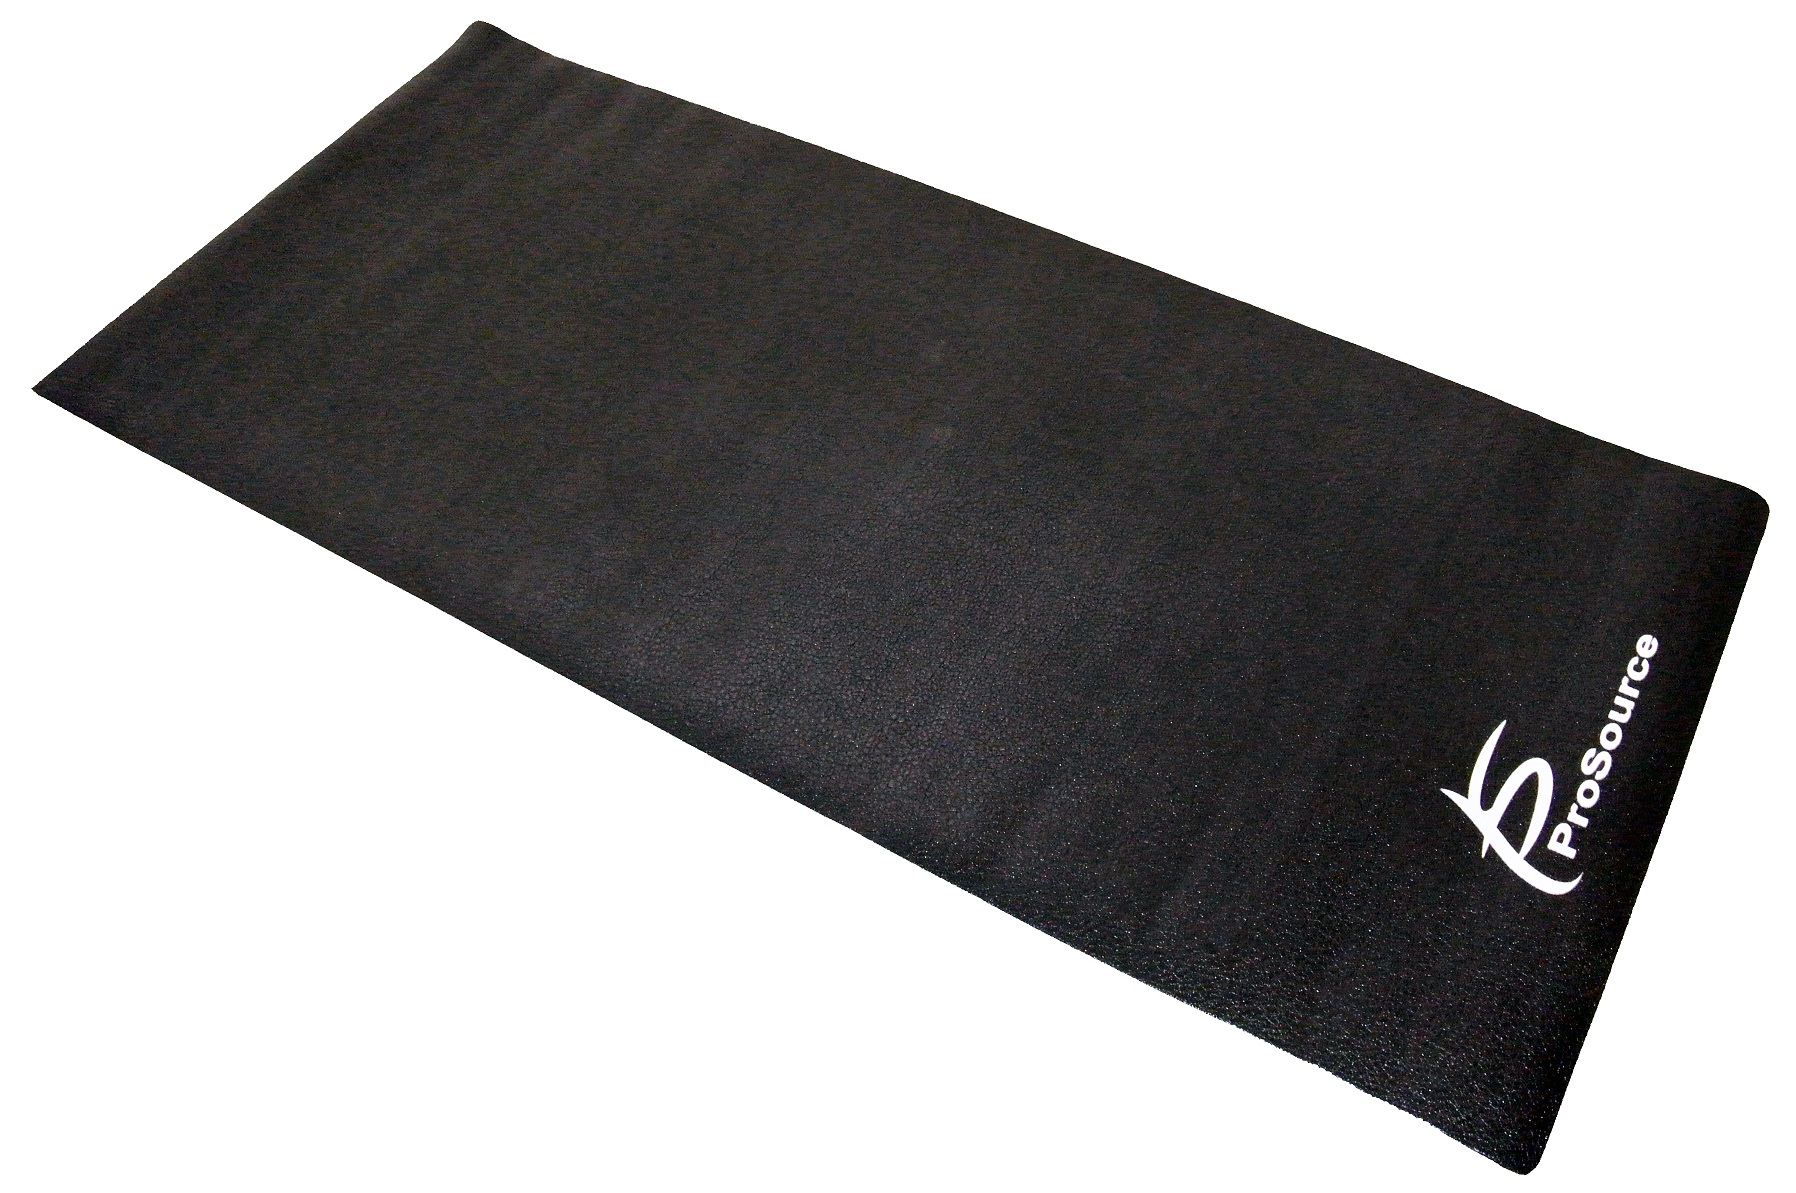 Prosource Pvc Floor Treadmill Mat For Elliptical Bike Gym